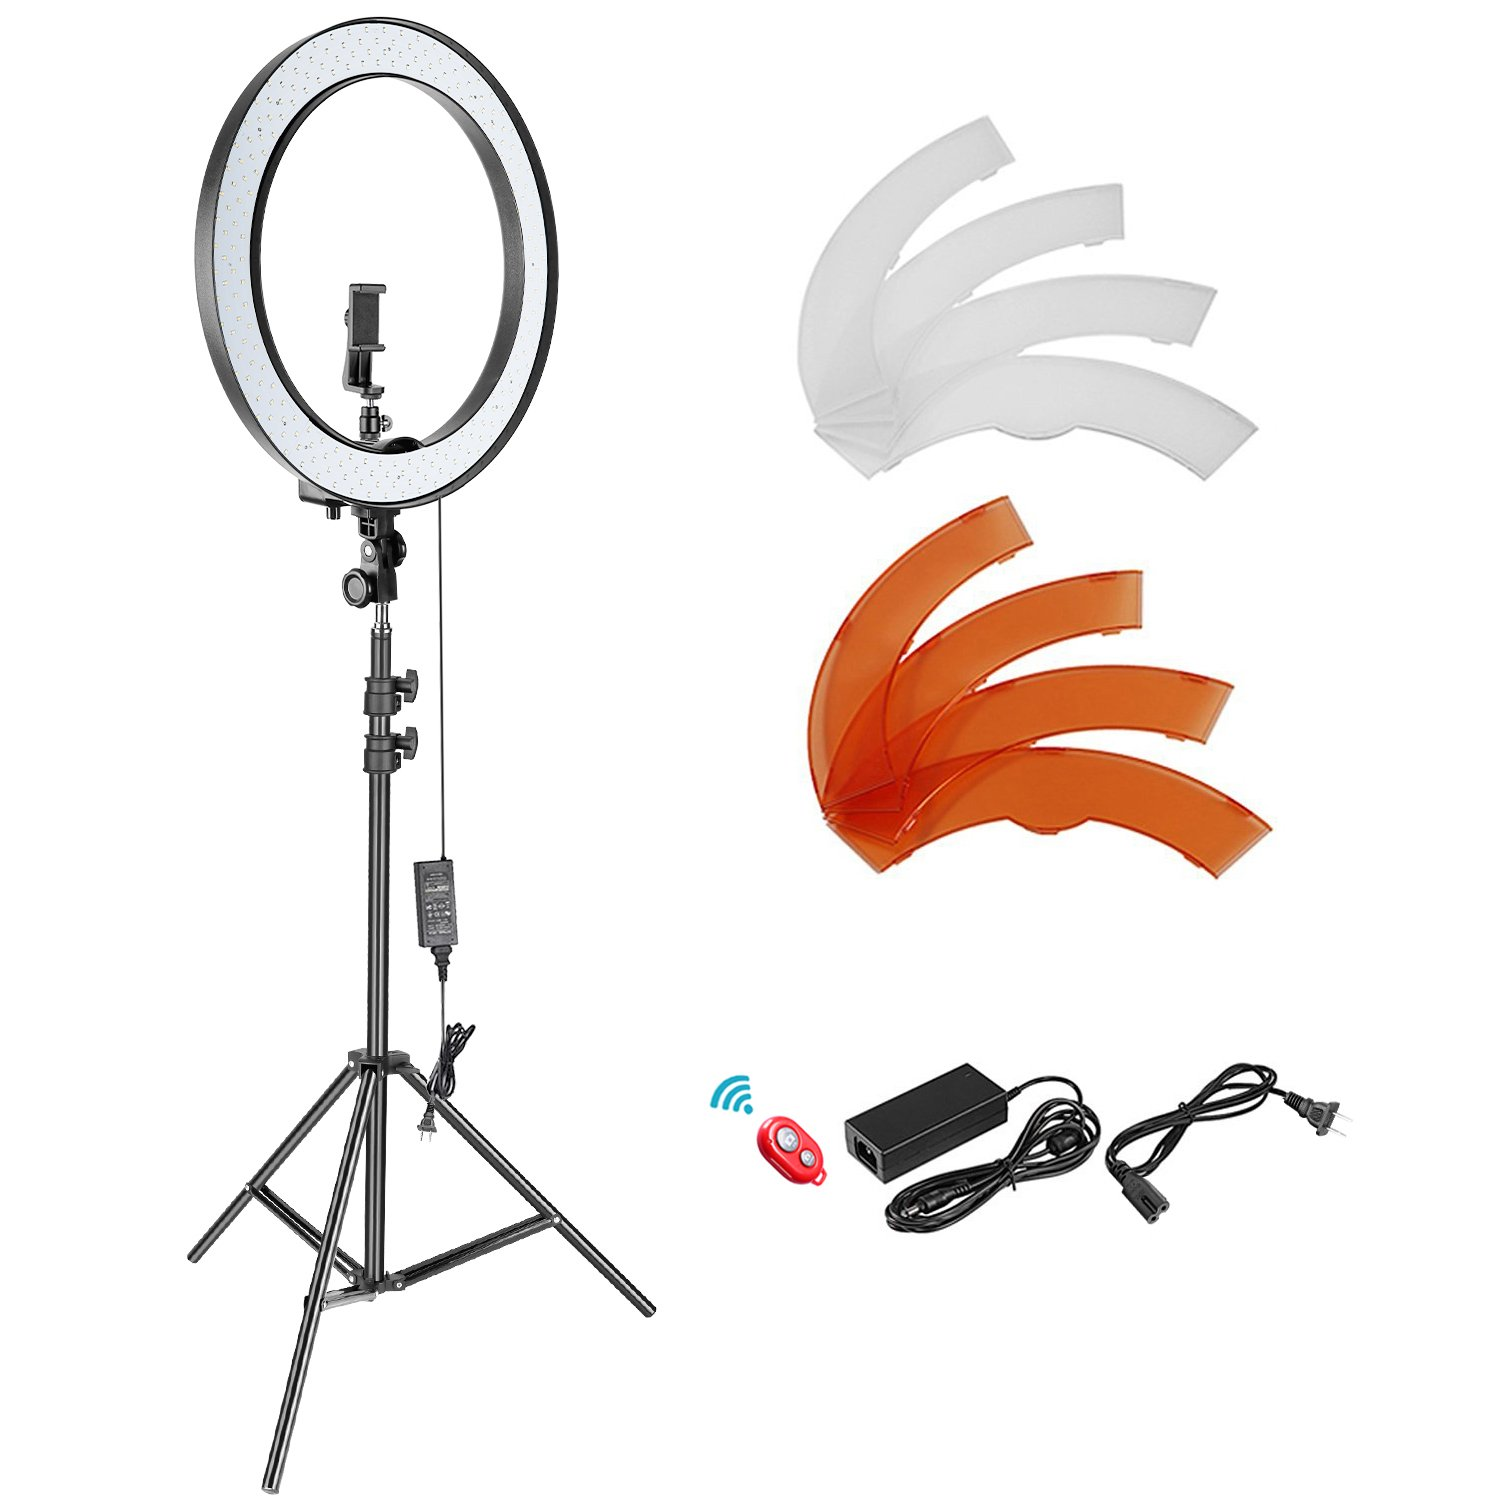 Neewer 18-inch Outer Dimmable SMD LED Ring Light Lighting Kit with 78.7 inches Light Stand, Phone Holder, Hot Shoe Adapter for Portrait YouTube Video Shooting (No Carrying Bag) by Neewer